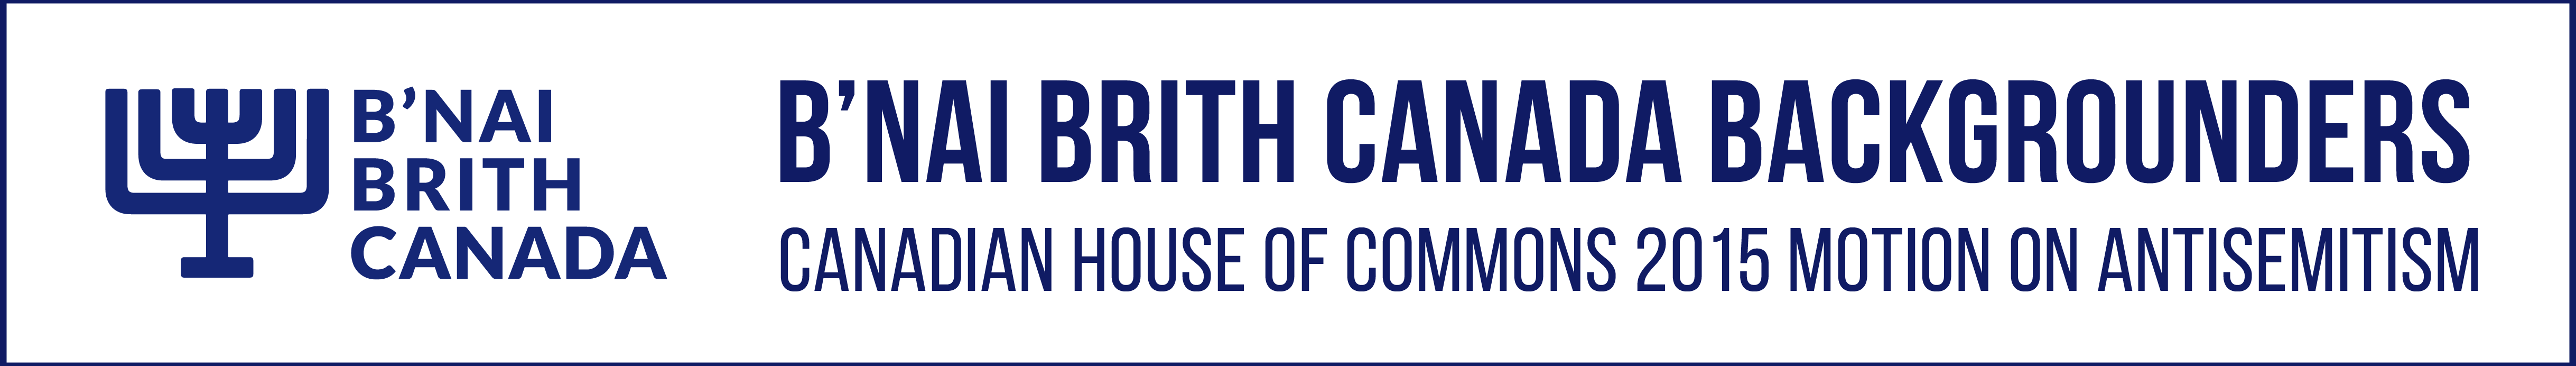 B'nai Brith Backgrounders: Canadian House of Commons 2015 Motion on Antisemitism